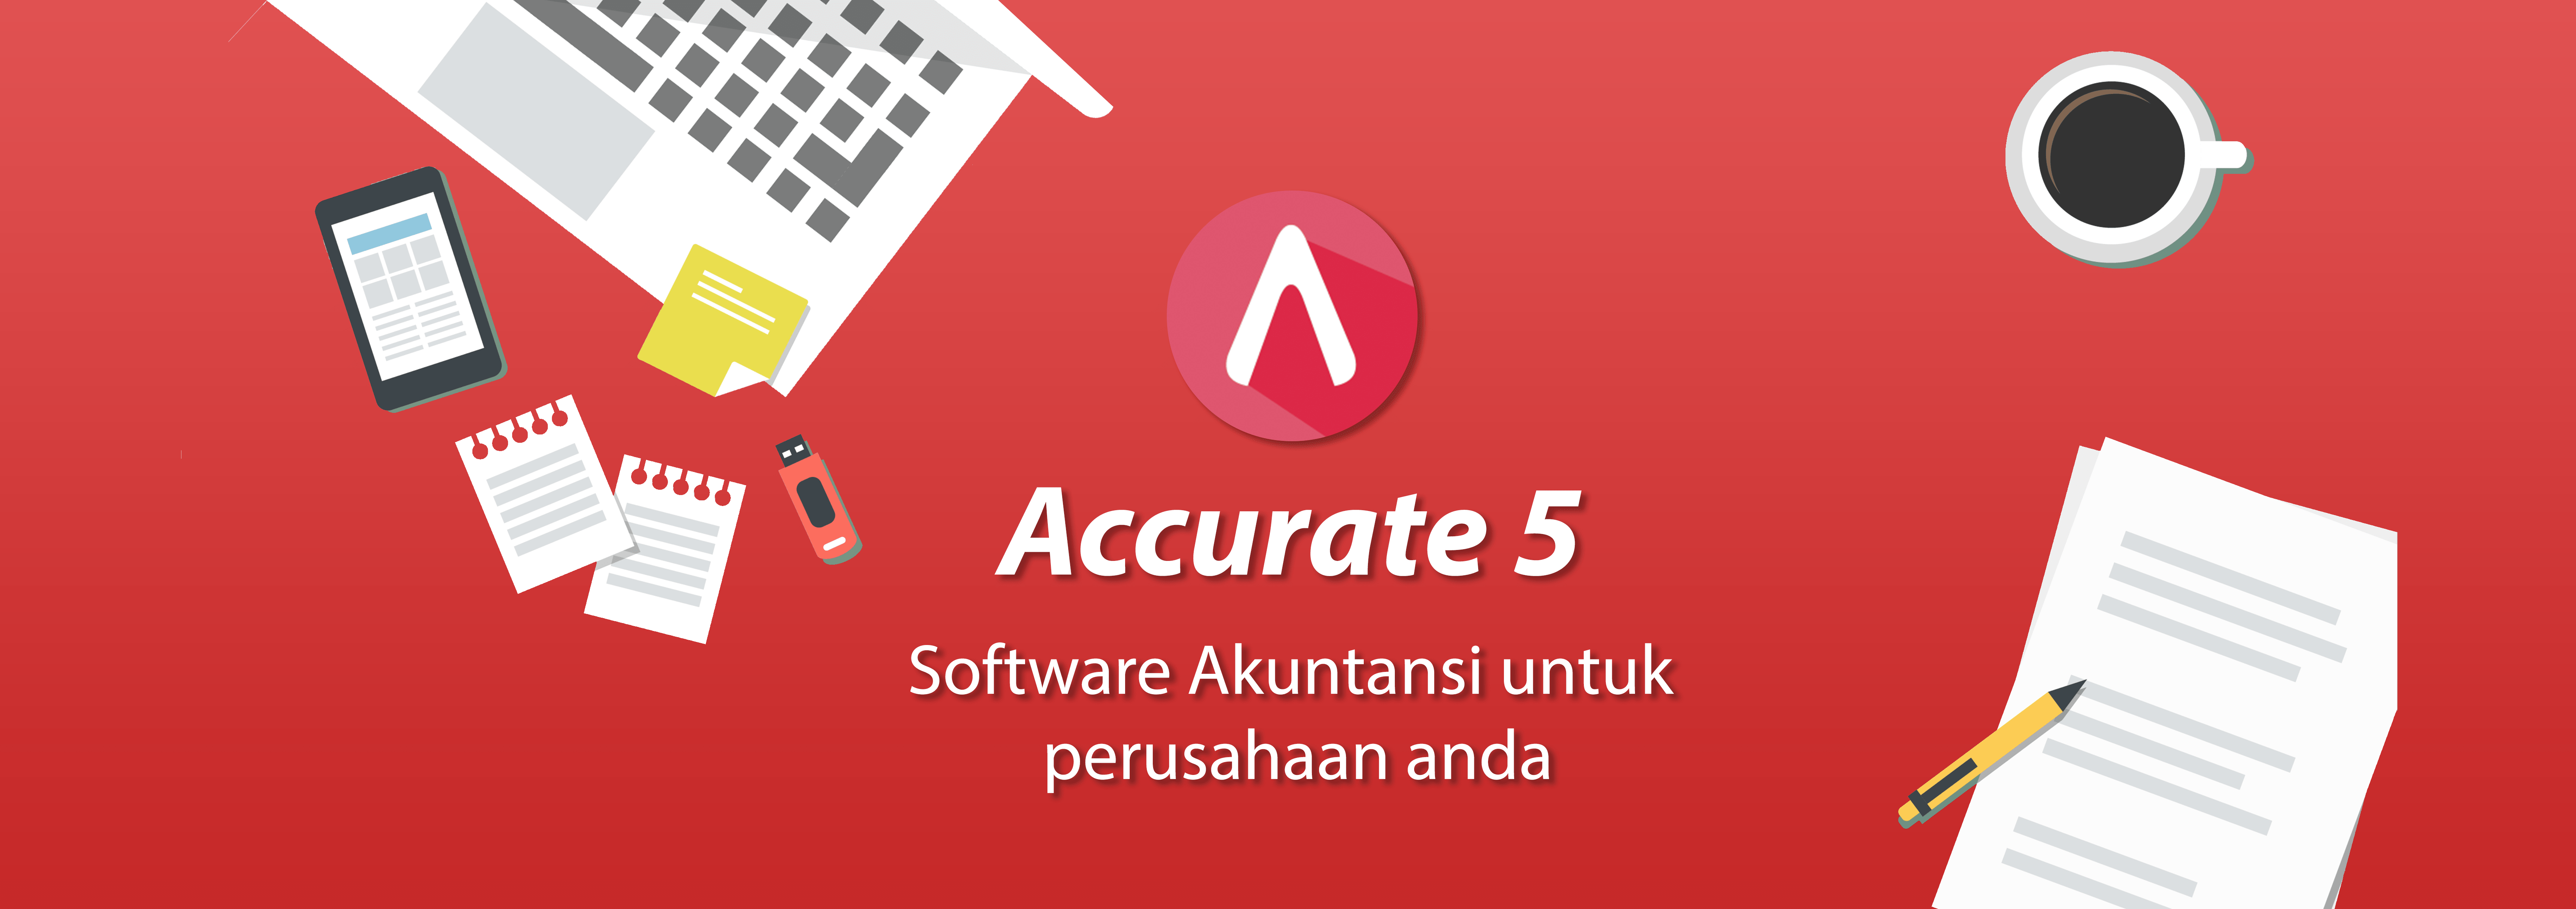 Software accurate 5